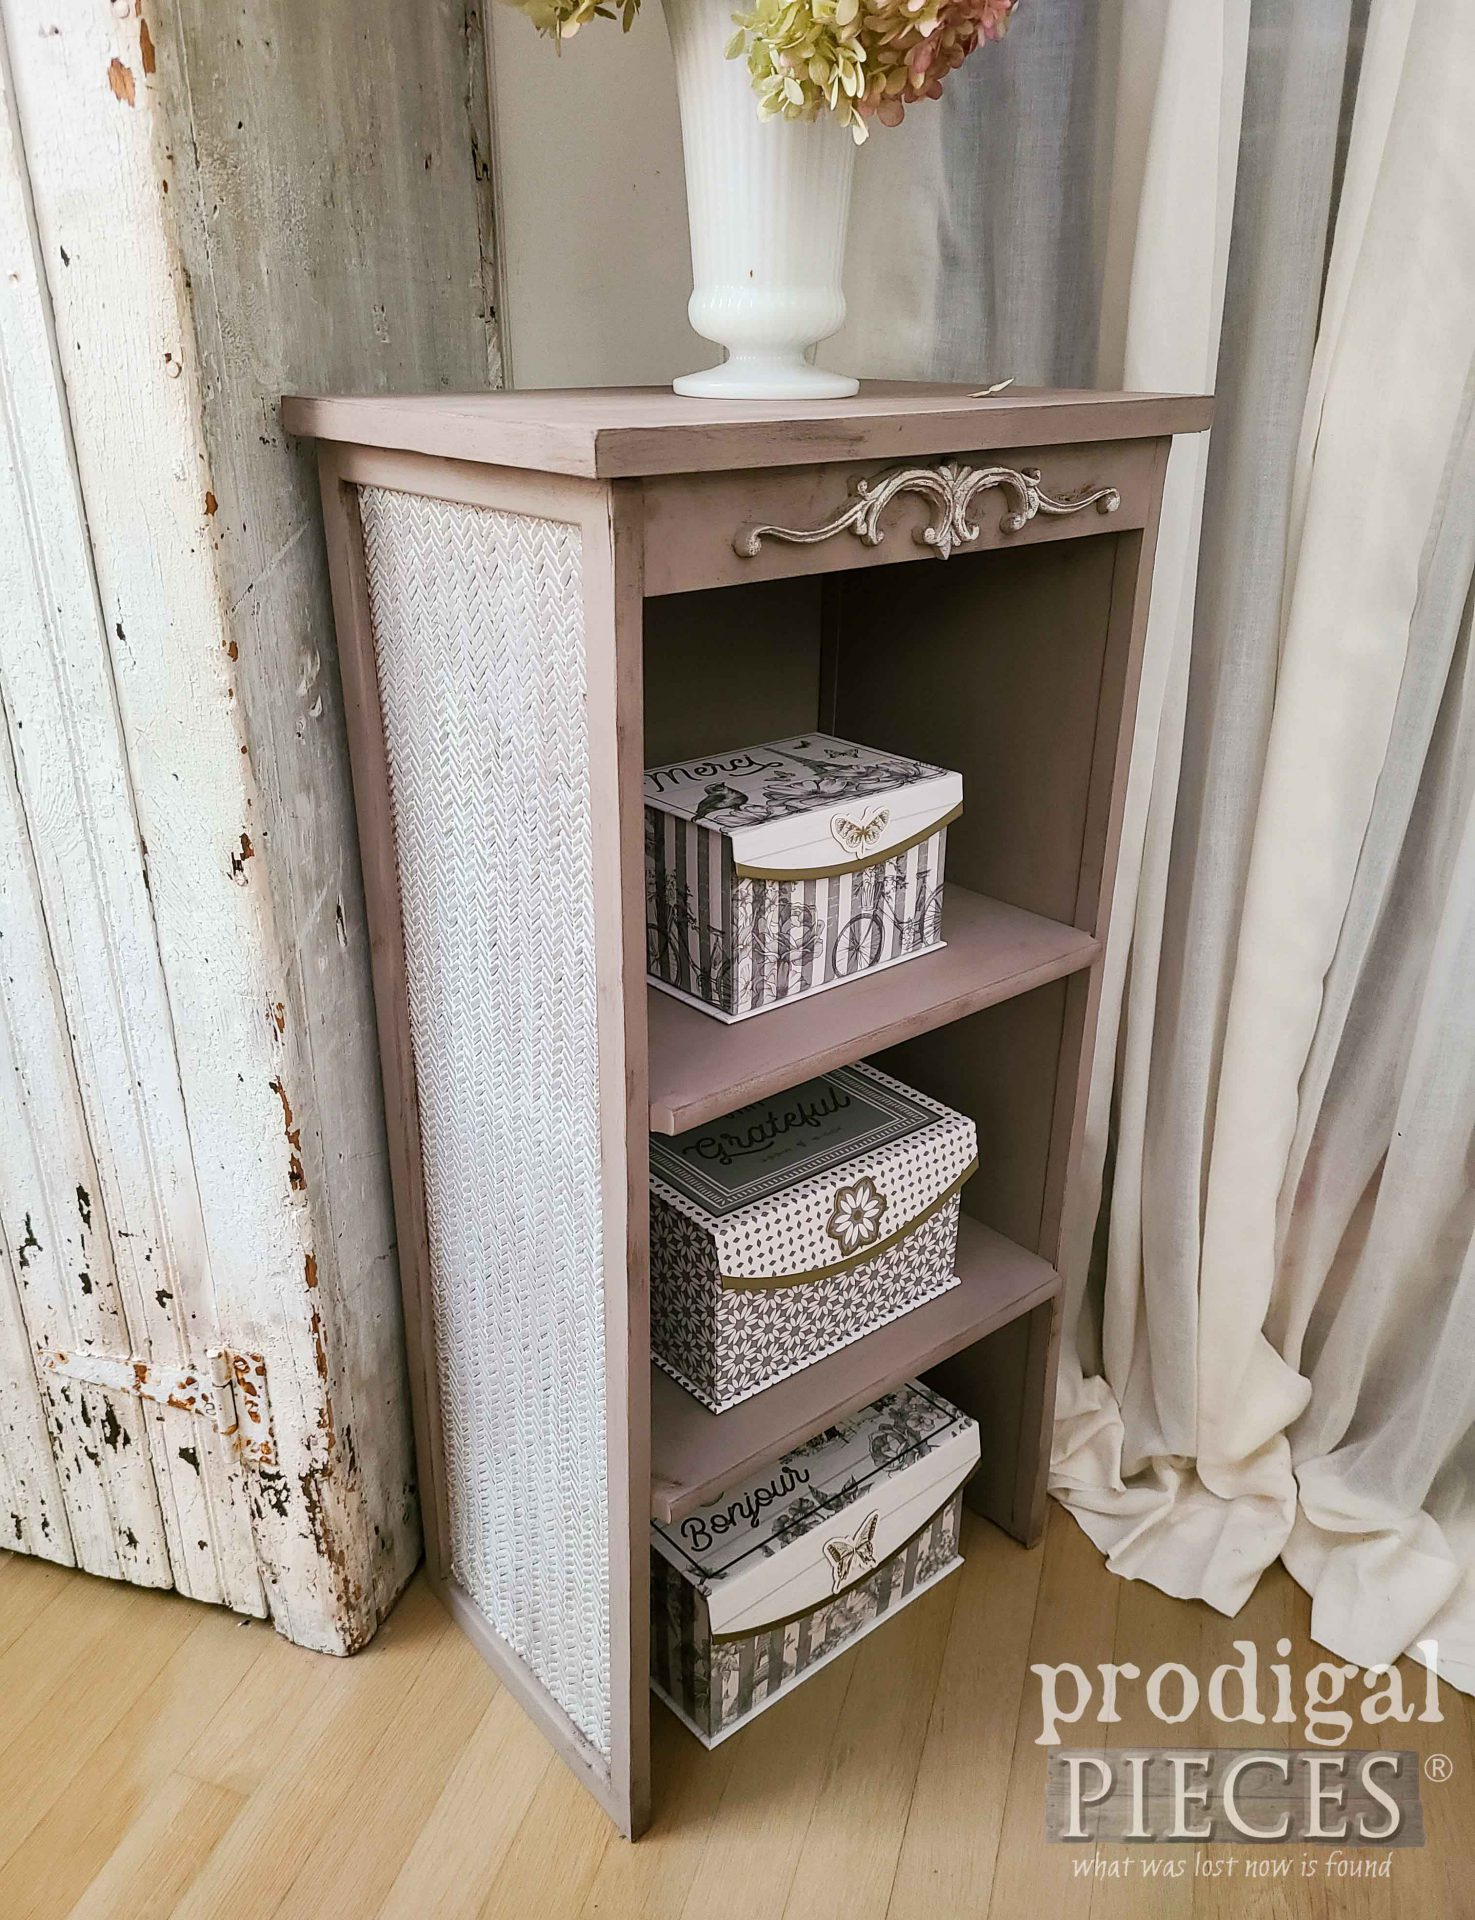 Side View of Broken Furniture Upcycled into Shelf with Storage Boxes by Larissa of Prodigal Pieces | prodigalpieces.com #prodigalpieces #furniture #storage #home #homedecor